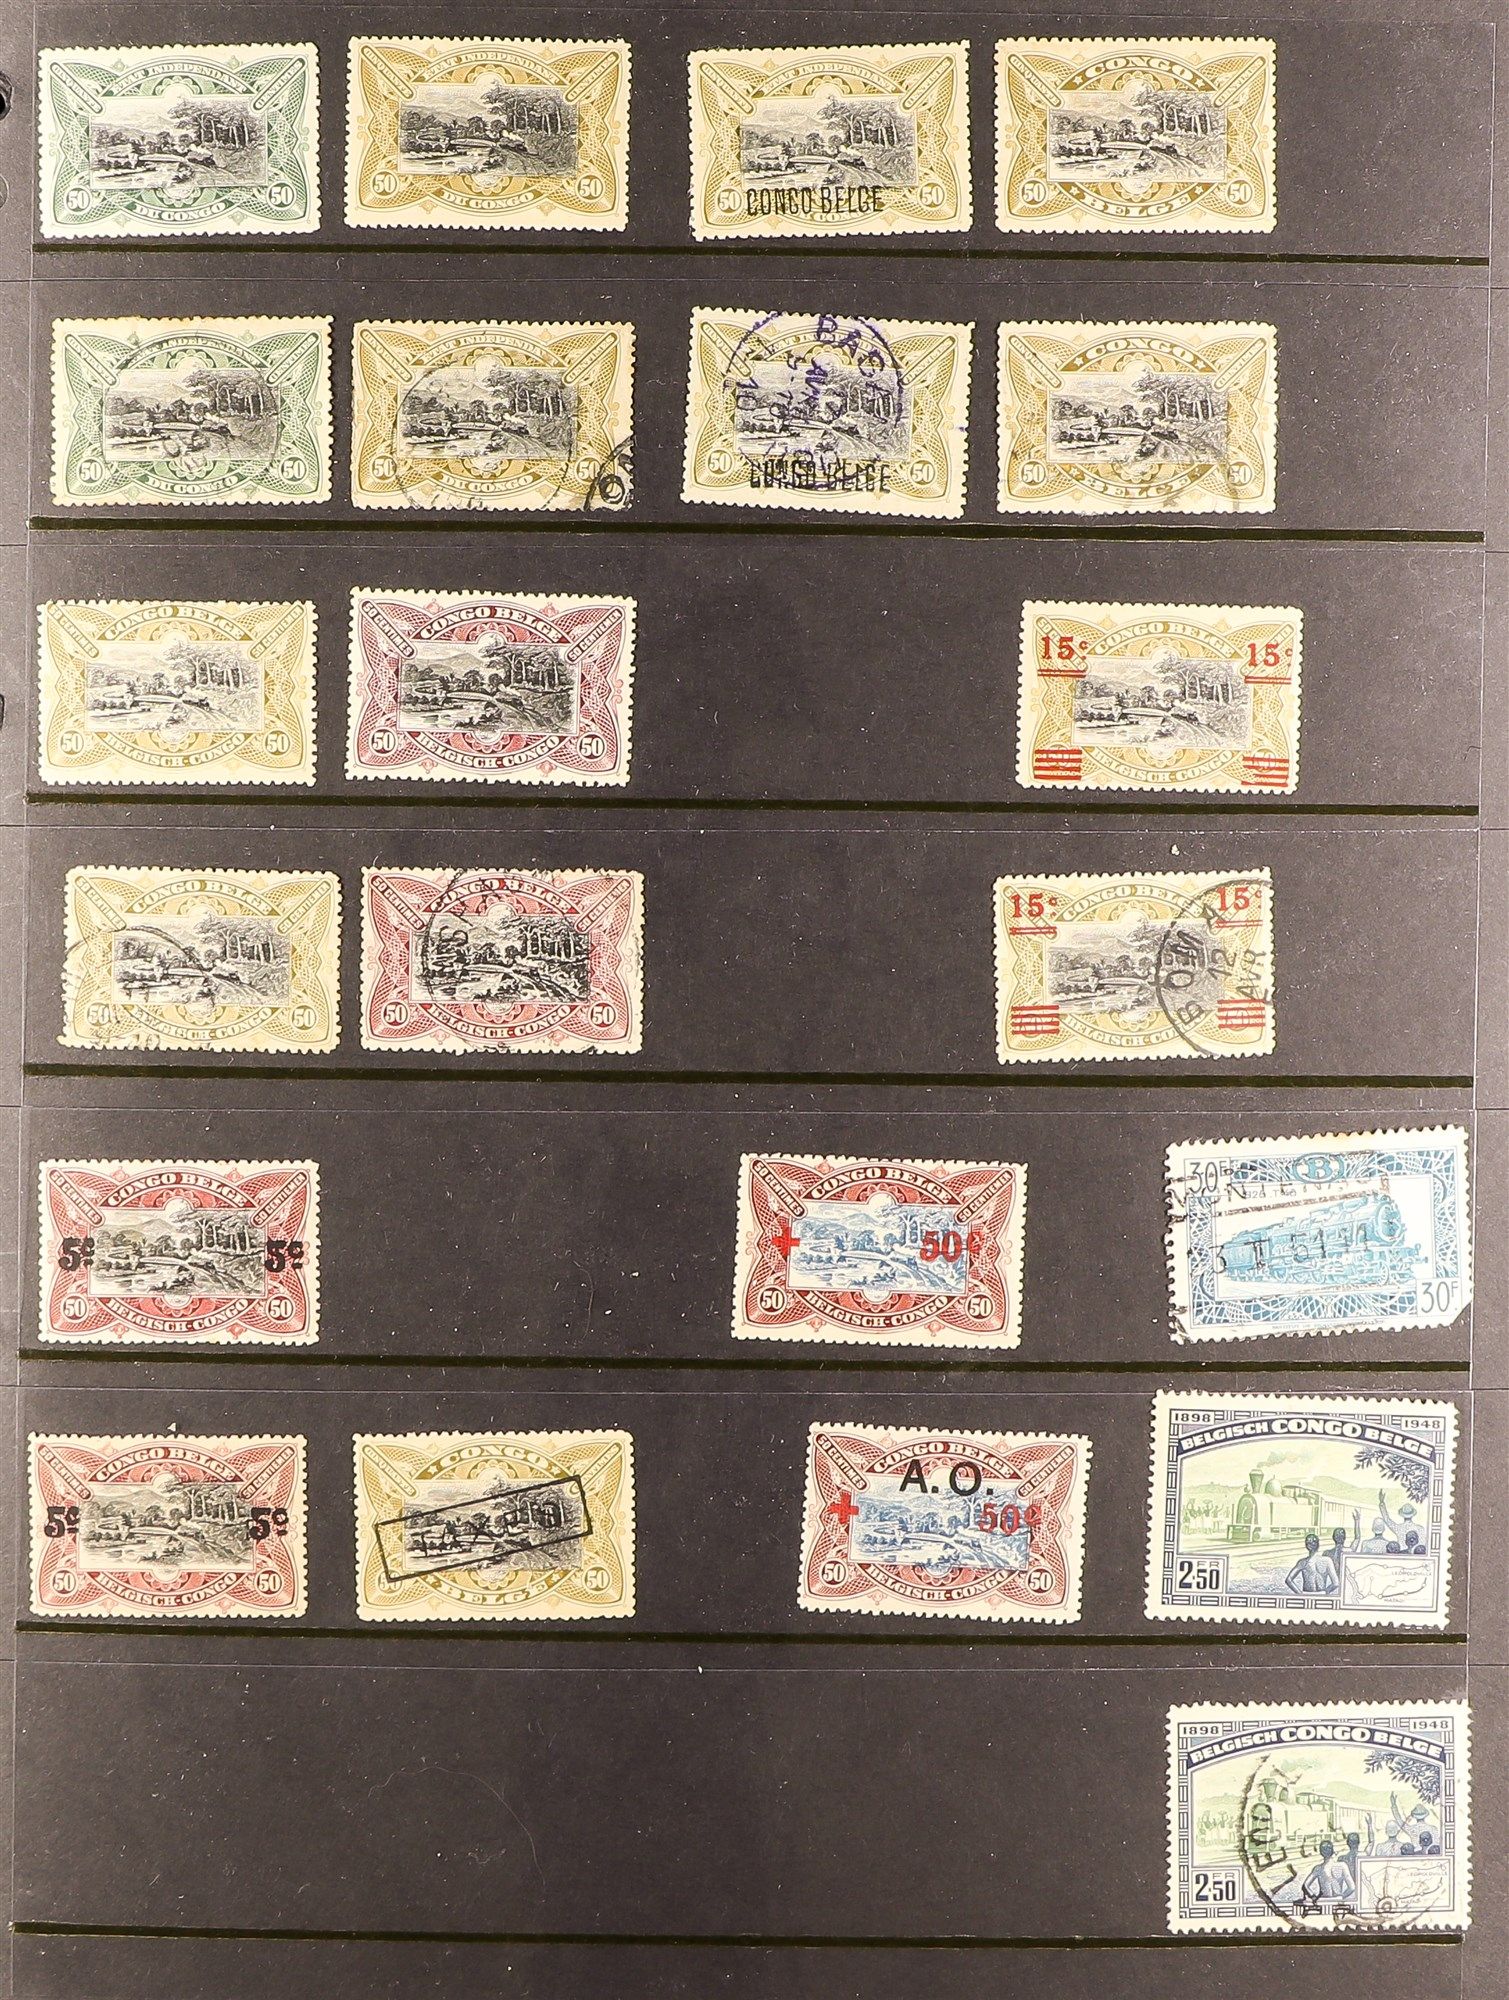 COLLECTIONS & ACCUMULATIONS RAILWAY & TRAINS ON STAMPS TOPICAL COLLECTION in six albums, early to